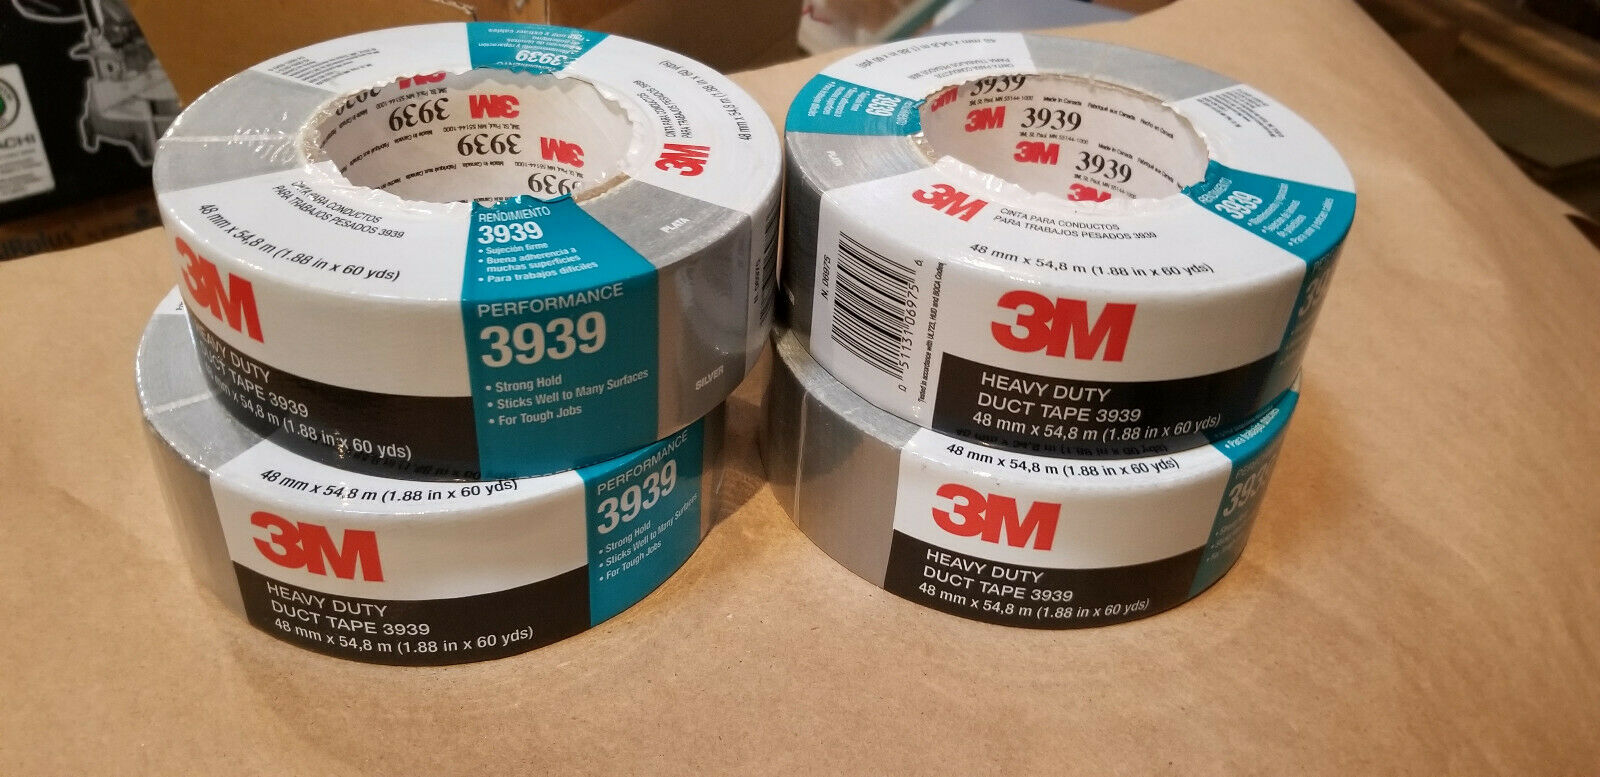 3M Heavy Duty Duct Tape 3939 Silver, 48 mm x 54.8 m 9.0 mil   ( 4-ROLL PACK )